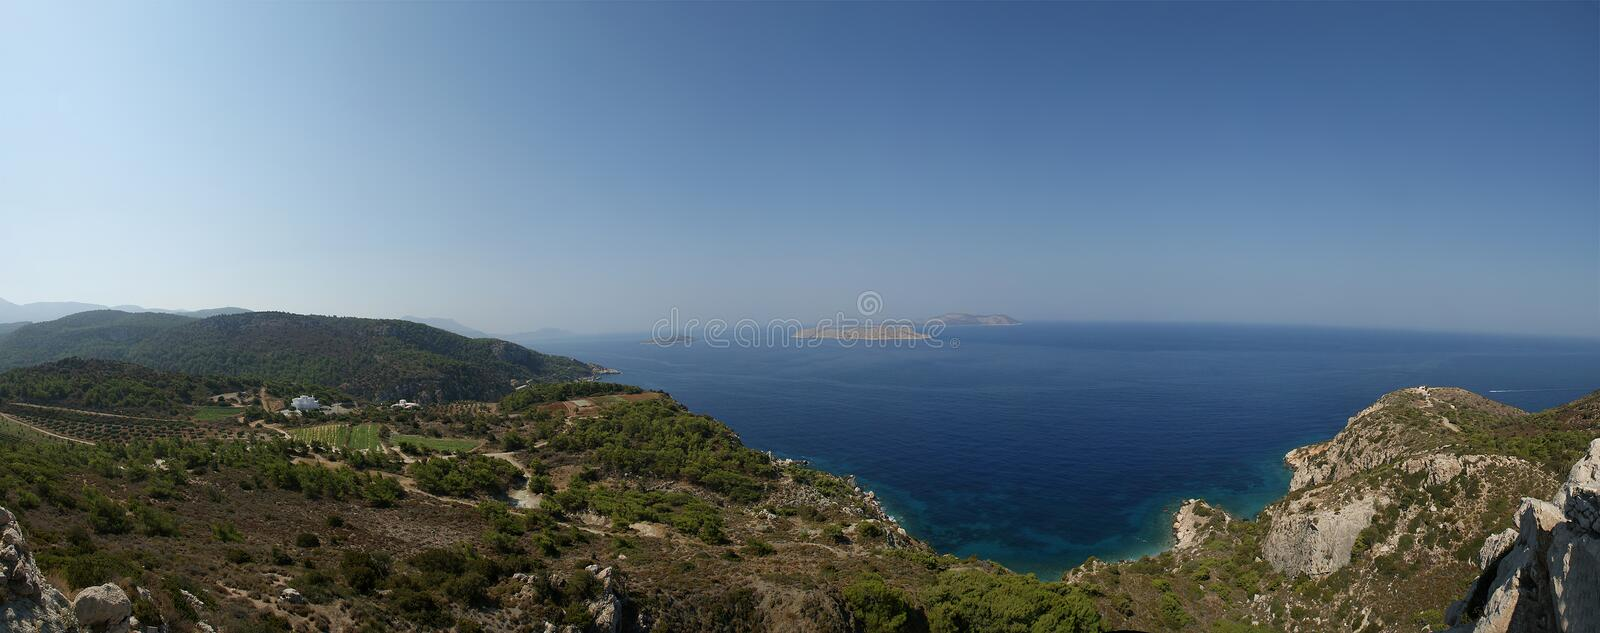 Seascape. Dodecanese Islands. In the Aegean Sea, Greece royalty free stock photos